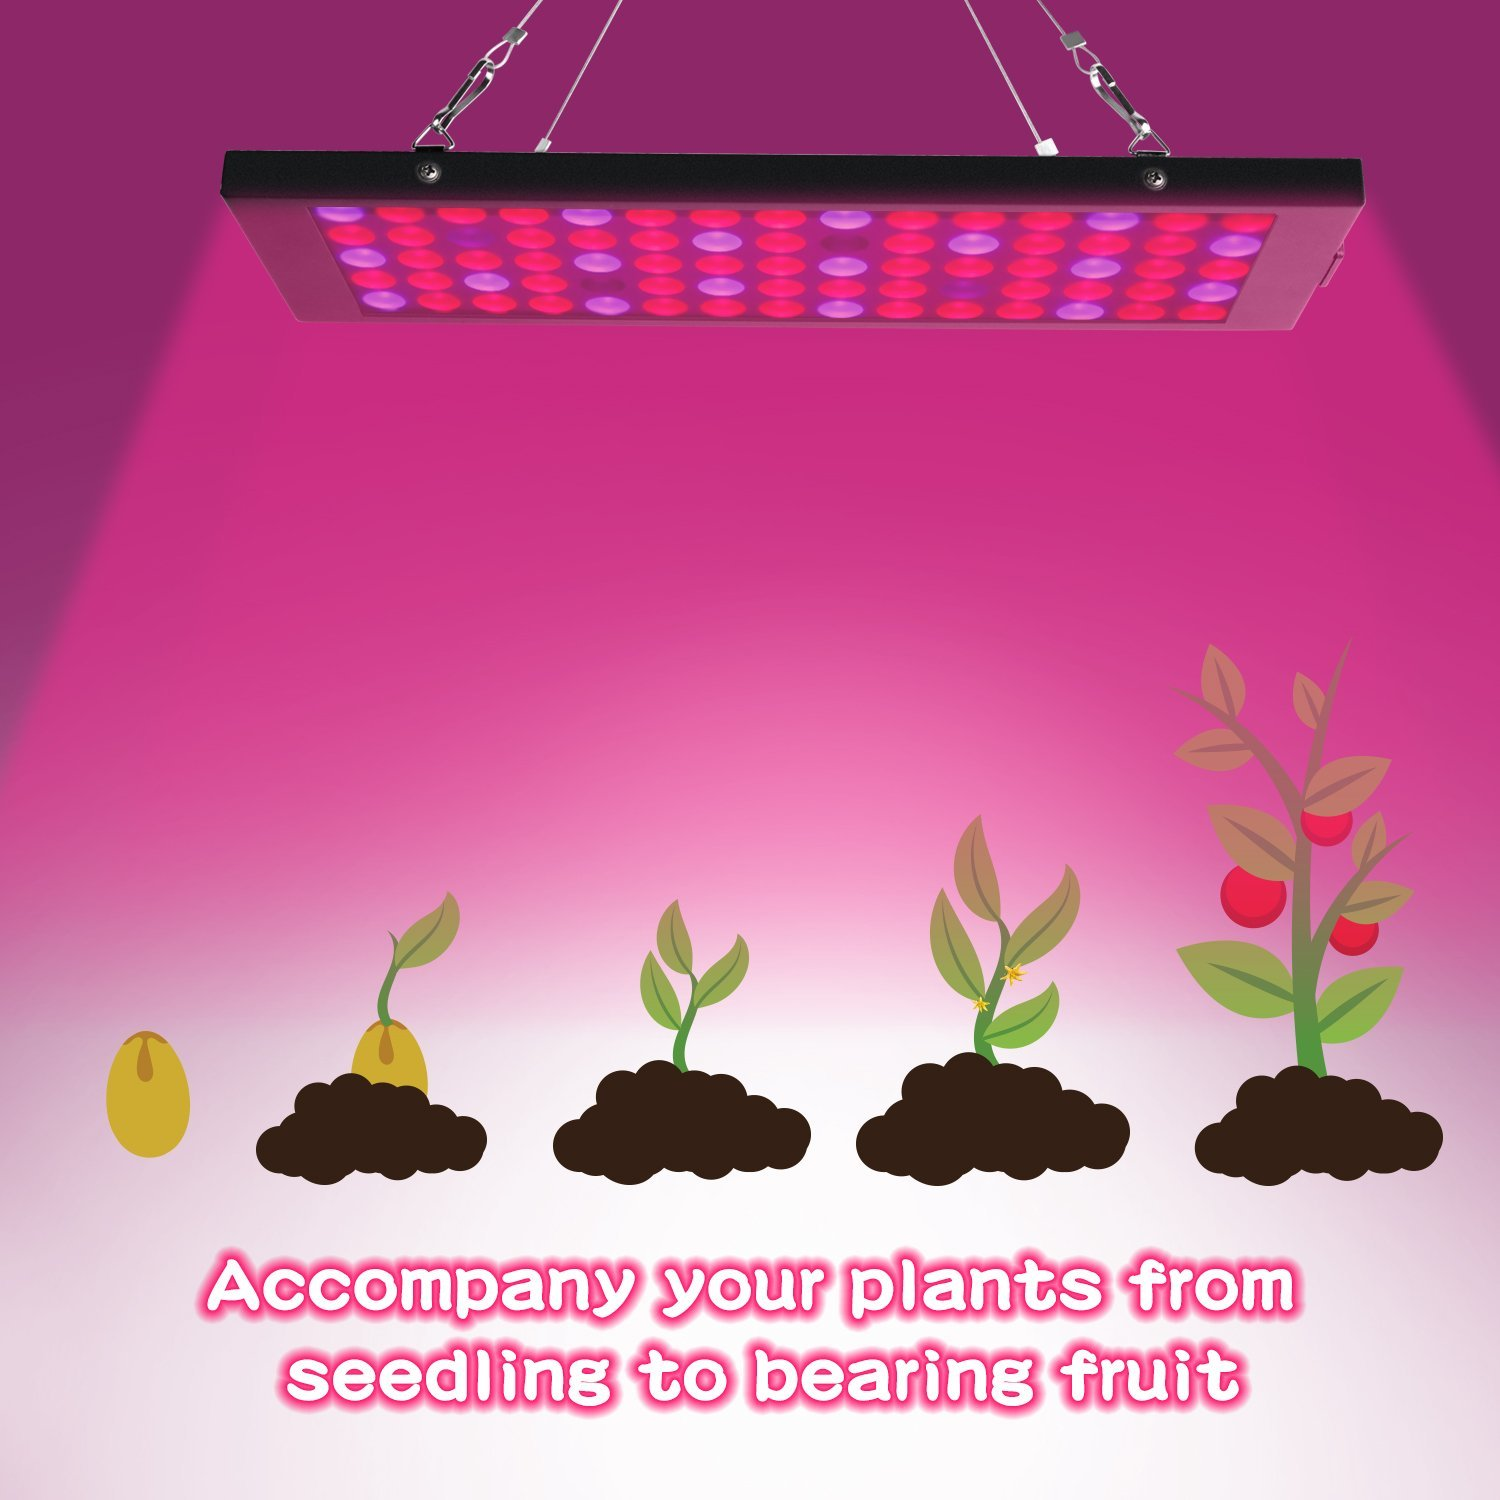 Egrow GL-2 Garden Flowering Grow Light 40W LED Plants Anti-fog Growing Lamp with Red Blue UV & IR Spectrum